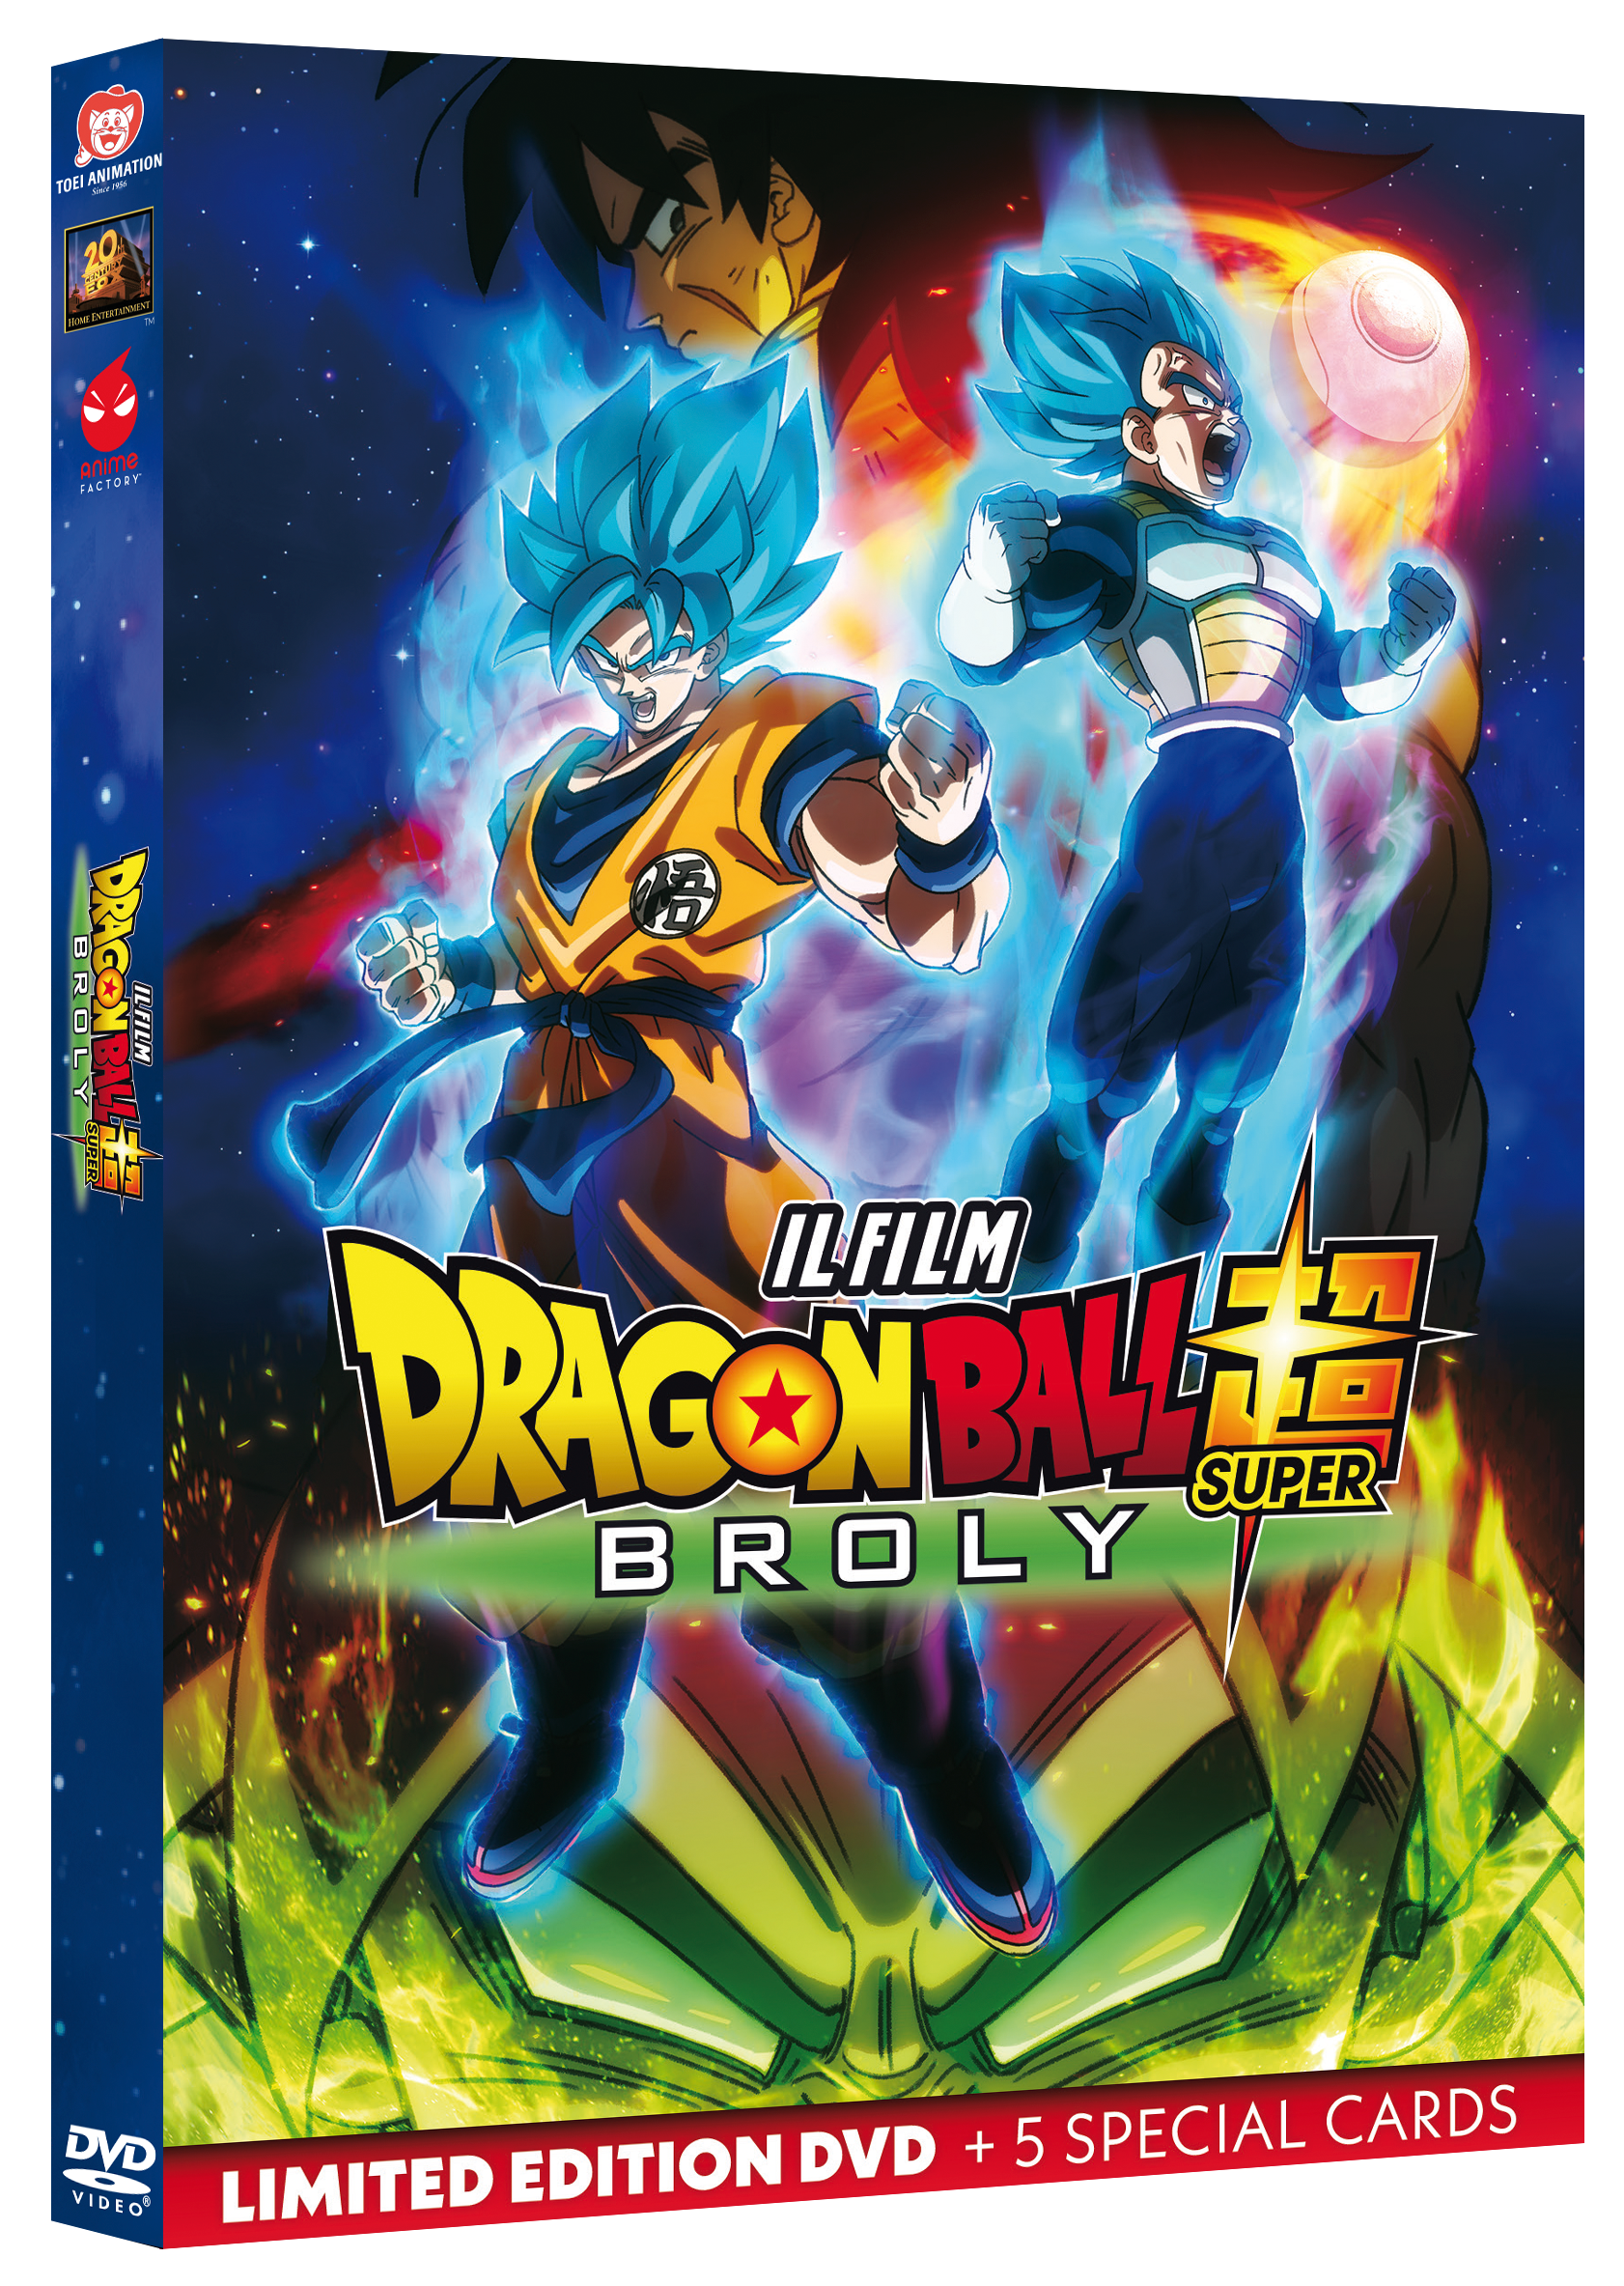 Dragon Ball Super: Broly Limited Edition DVD